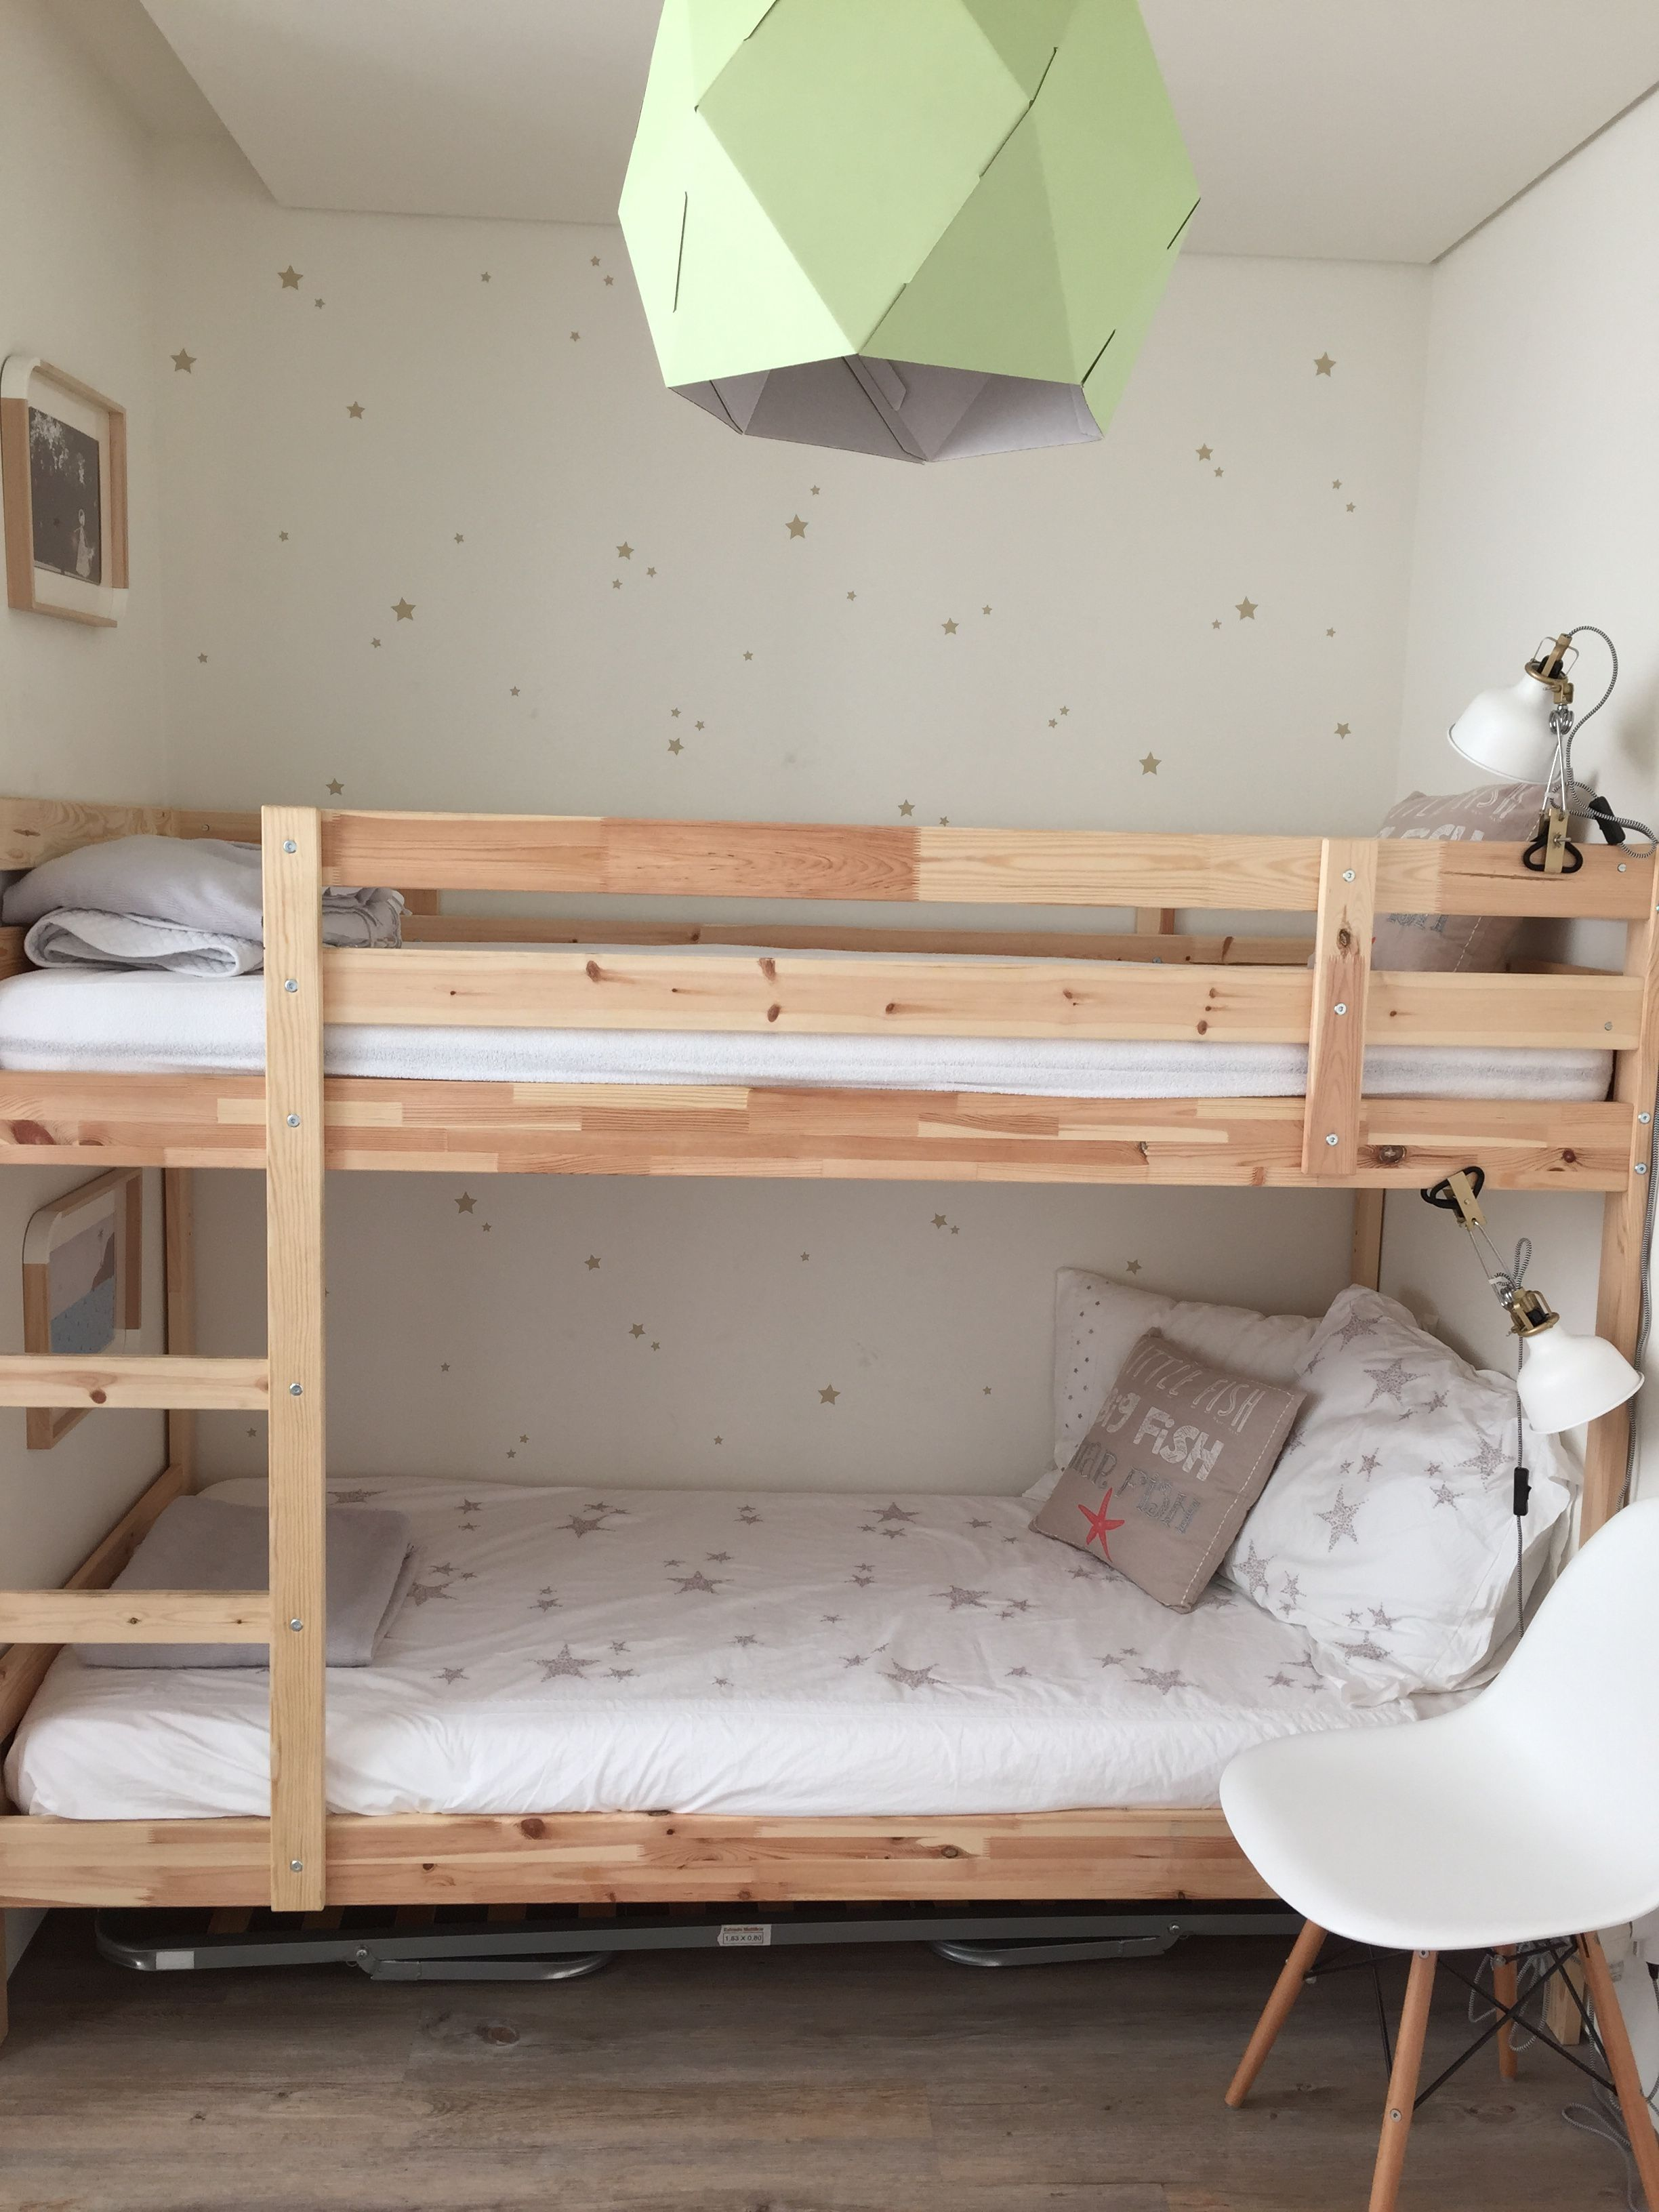 Wall Stickers Stars Bunkbed White Gold Kids Bedroom Ikea Mydal Bunk Bed Diy Beds With Storage